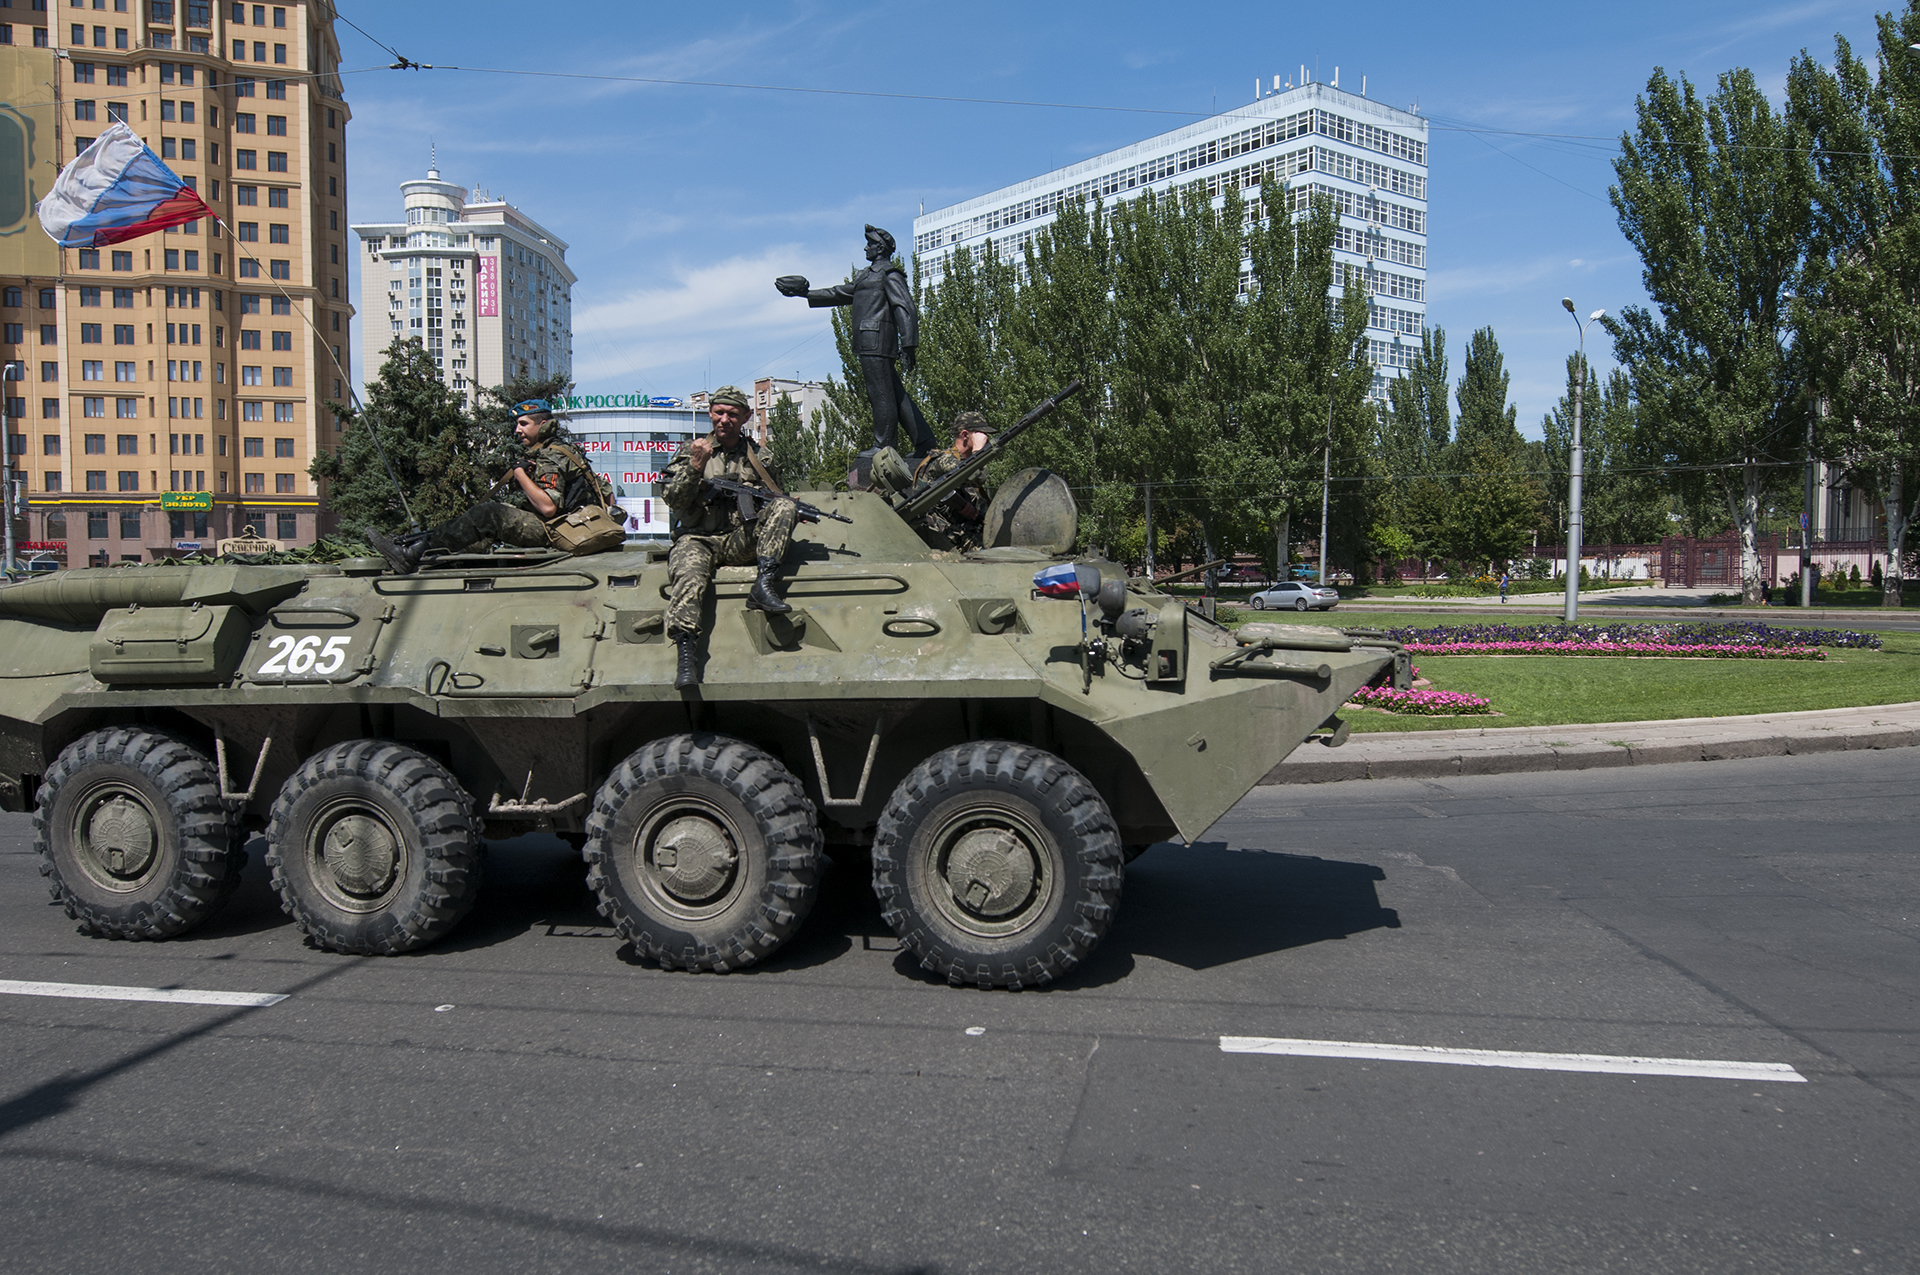 Pro-Russian separatist cheering from the top of his BTR on its way to battle